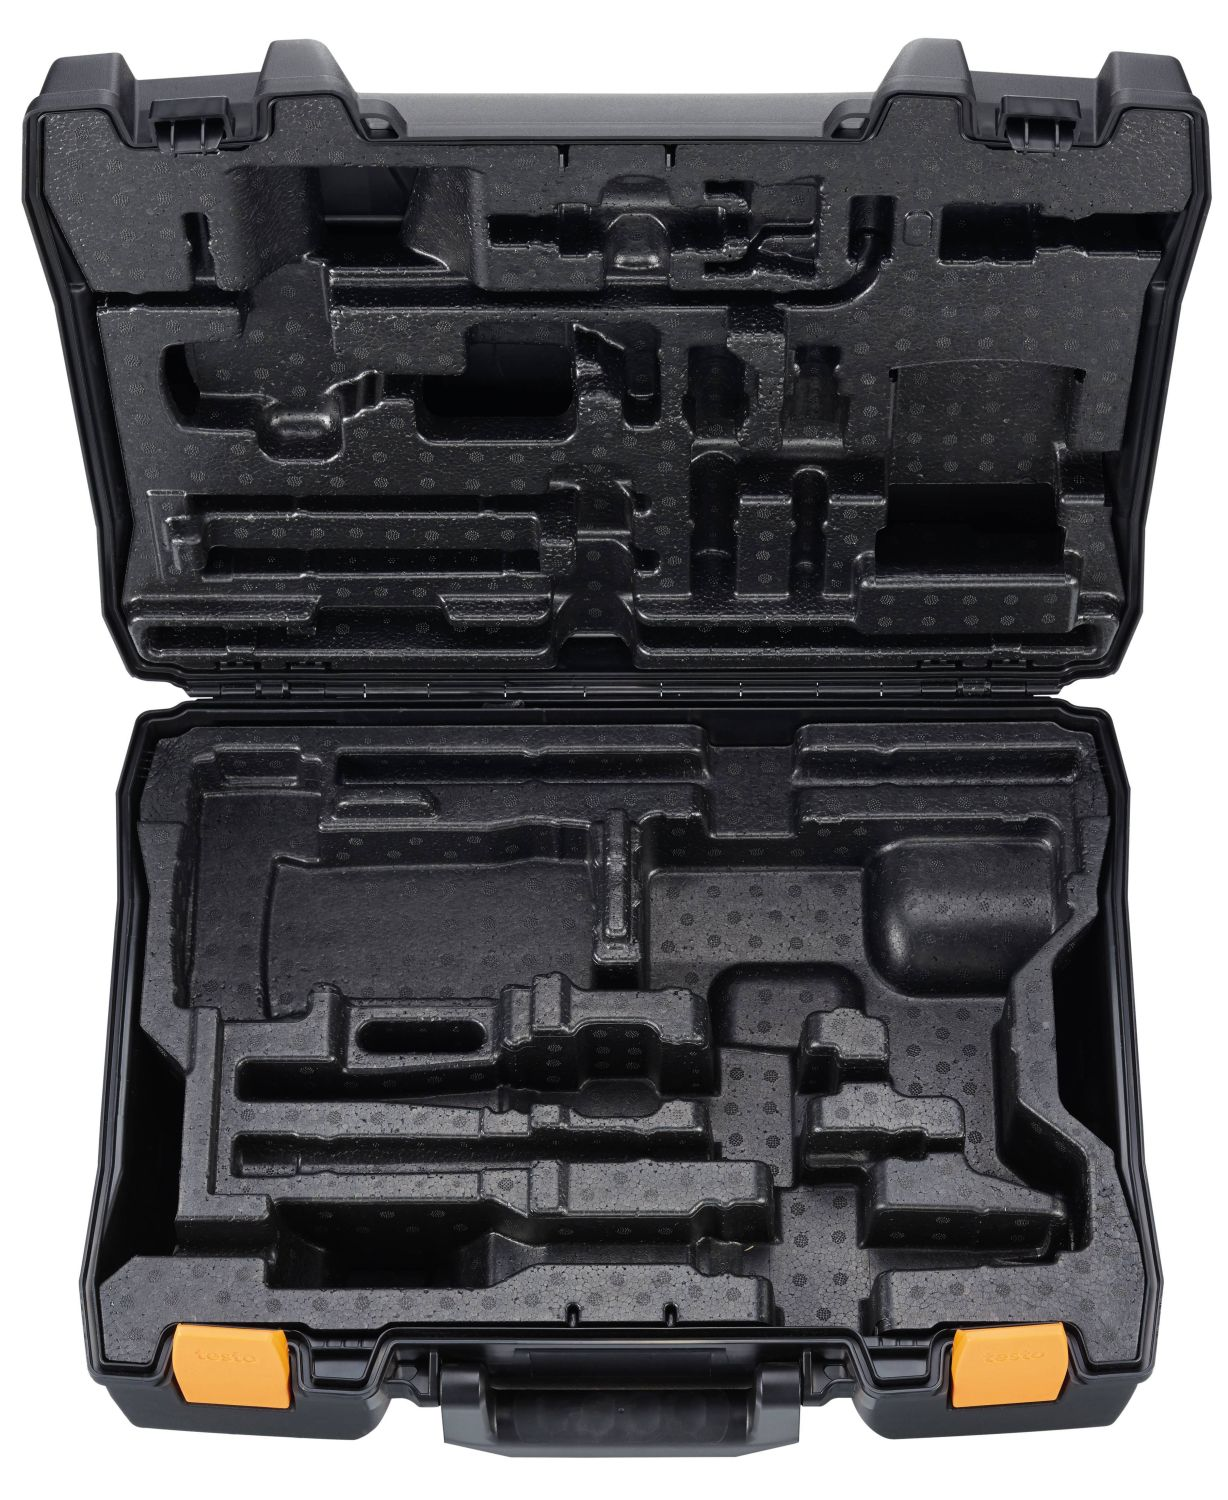 Transport case for air flow measurements